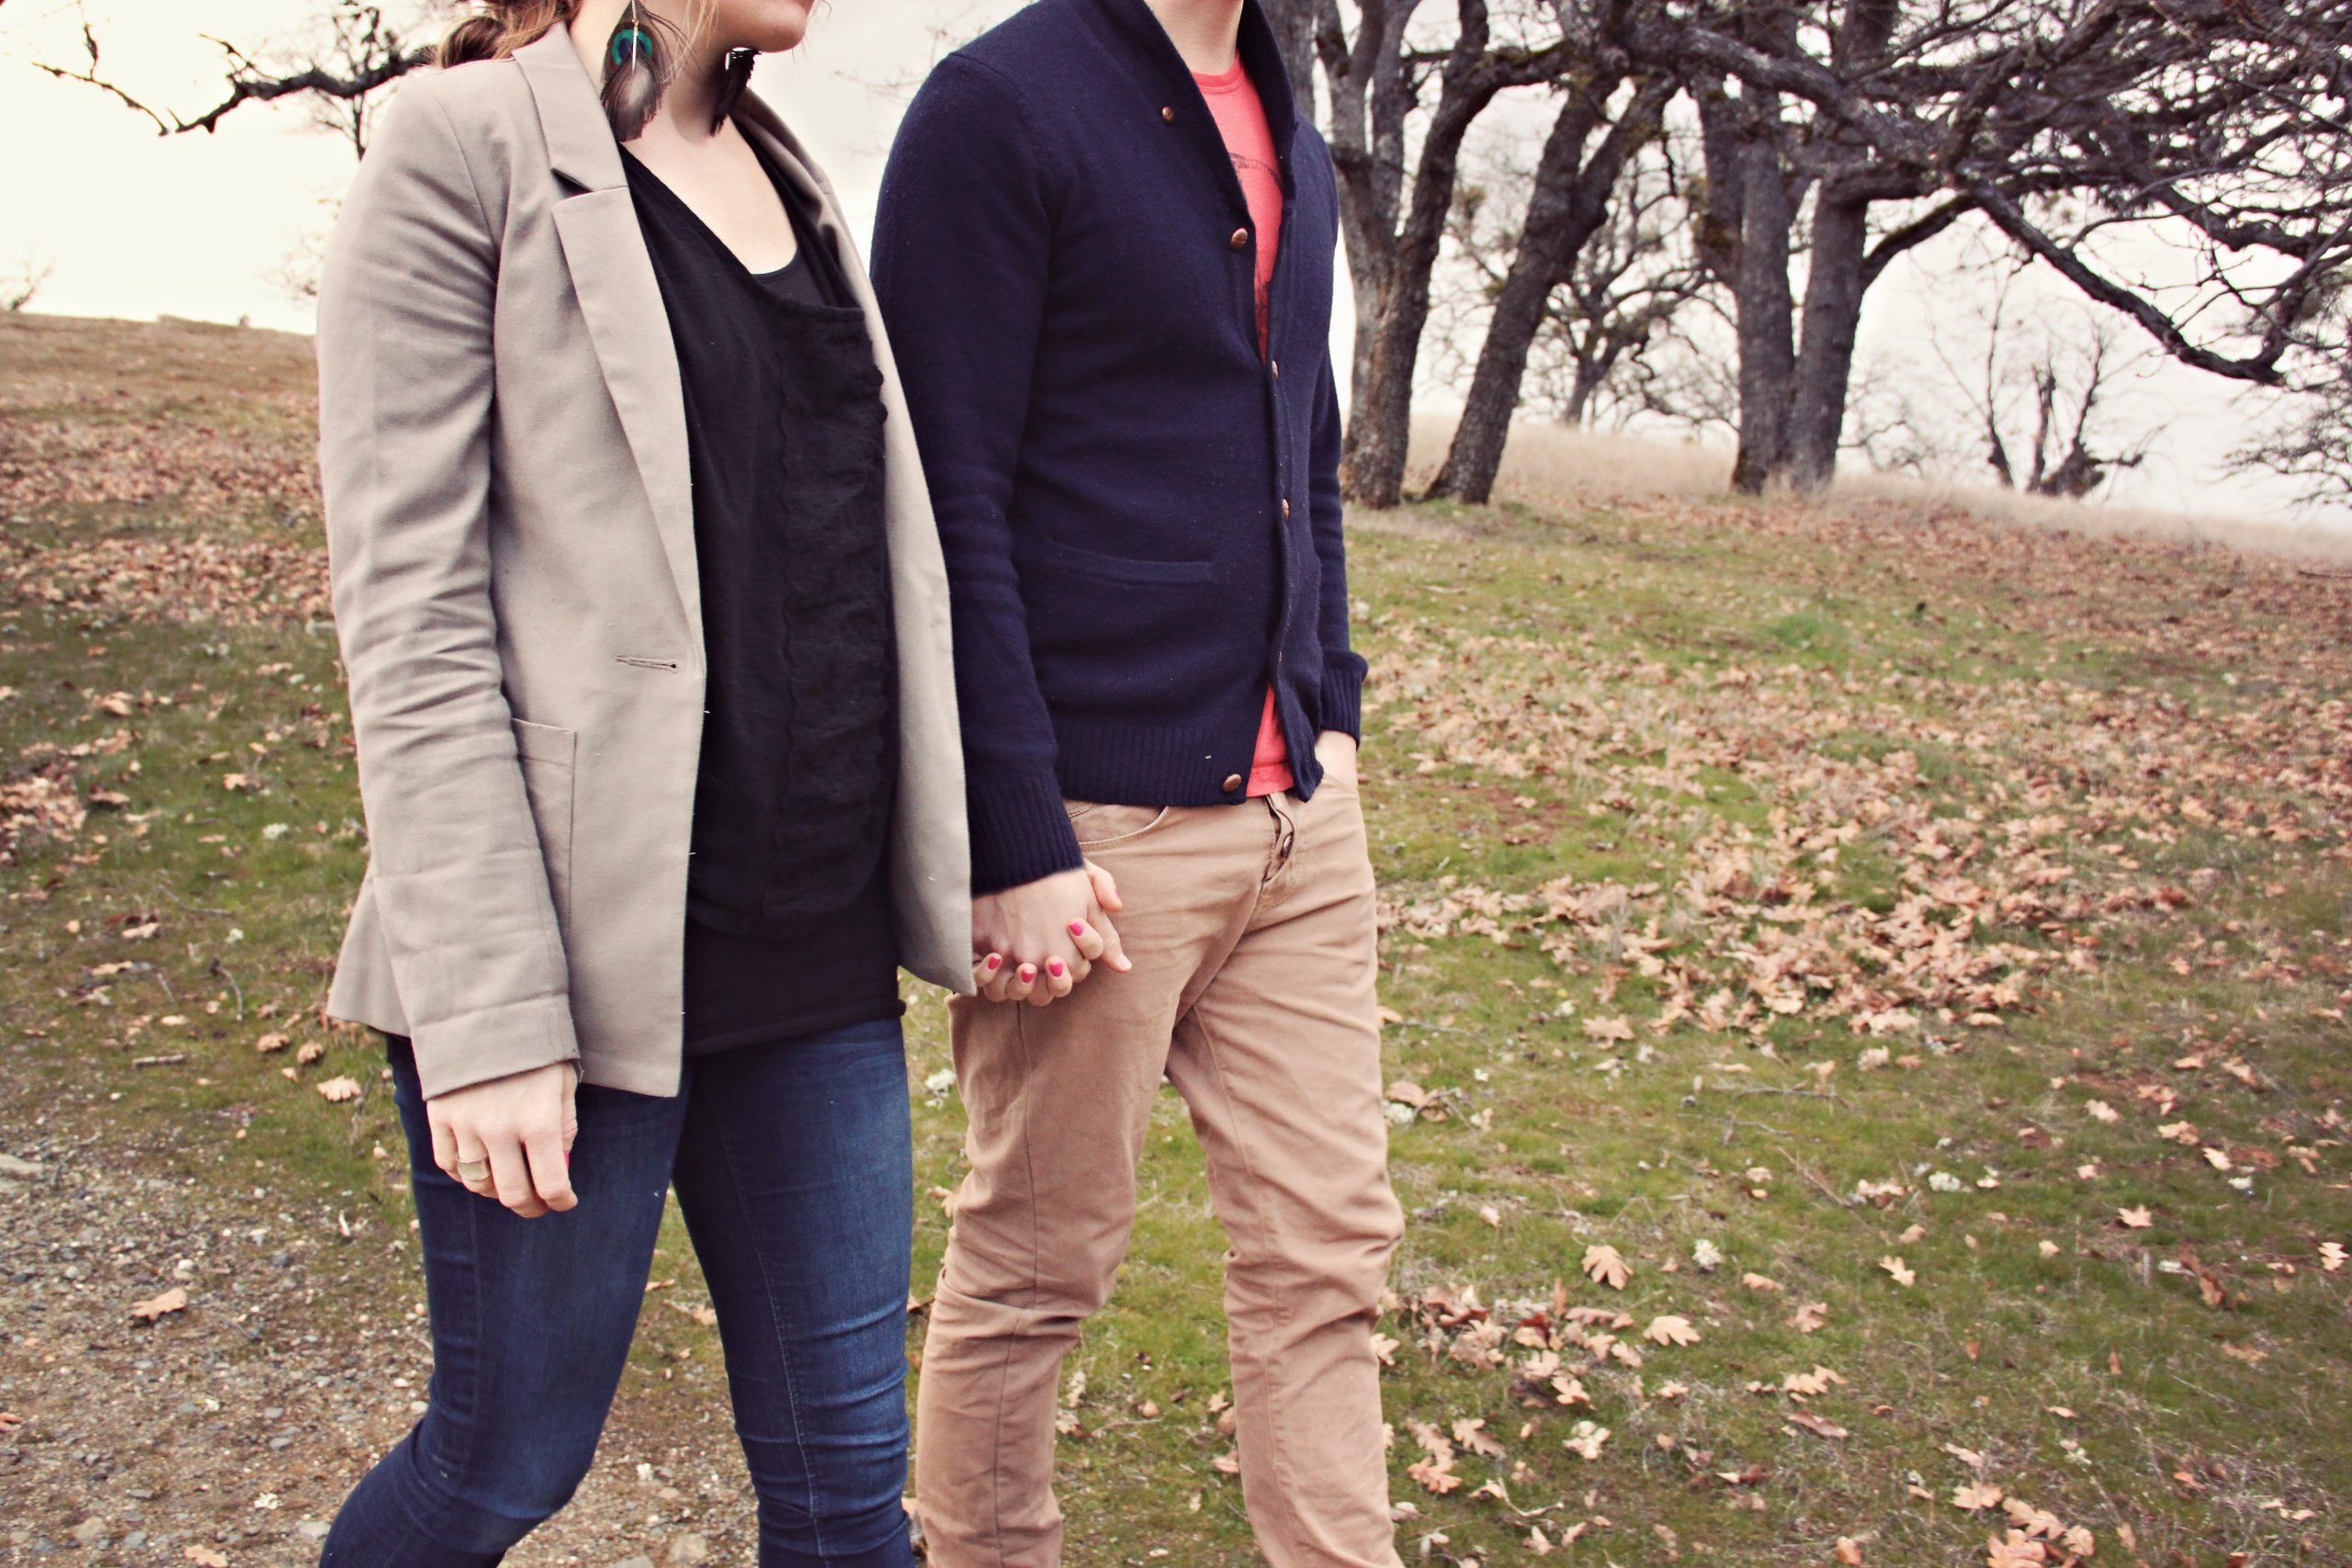 How to Keep Chronic Pain from Ruining Your Marriage